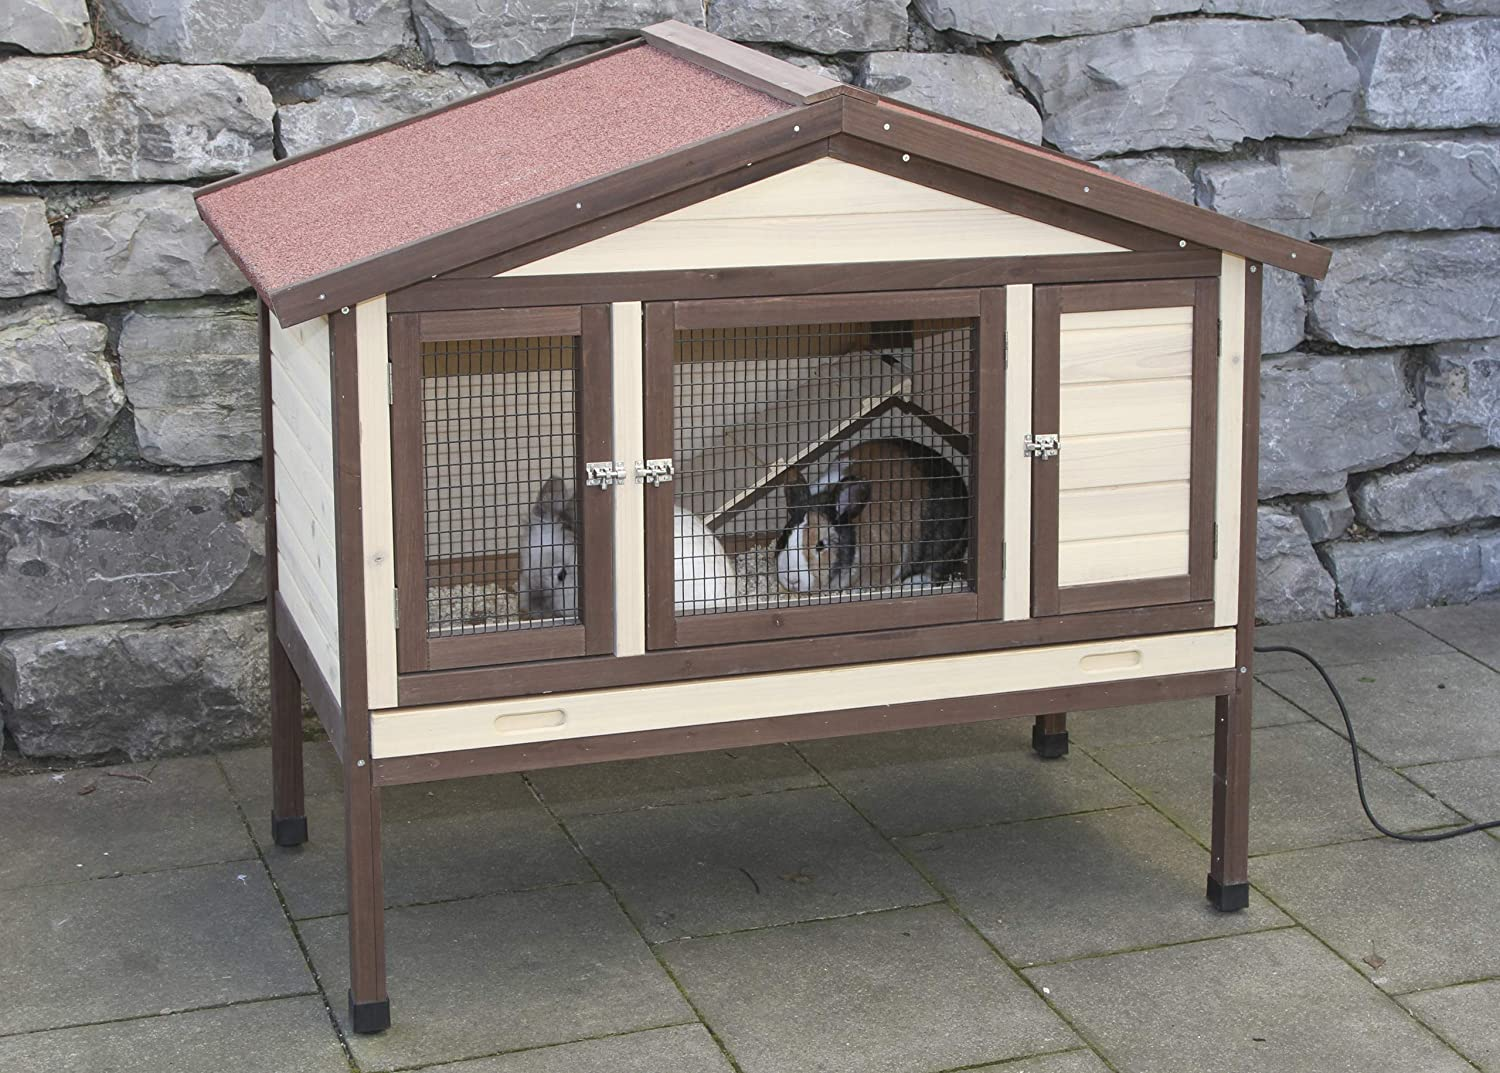 Kerbl Rodent Cage 4-Seasons Deluxe, 130 x 66 x 110 cm